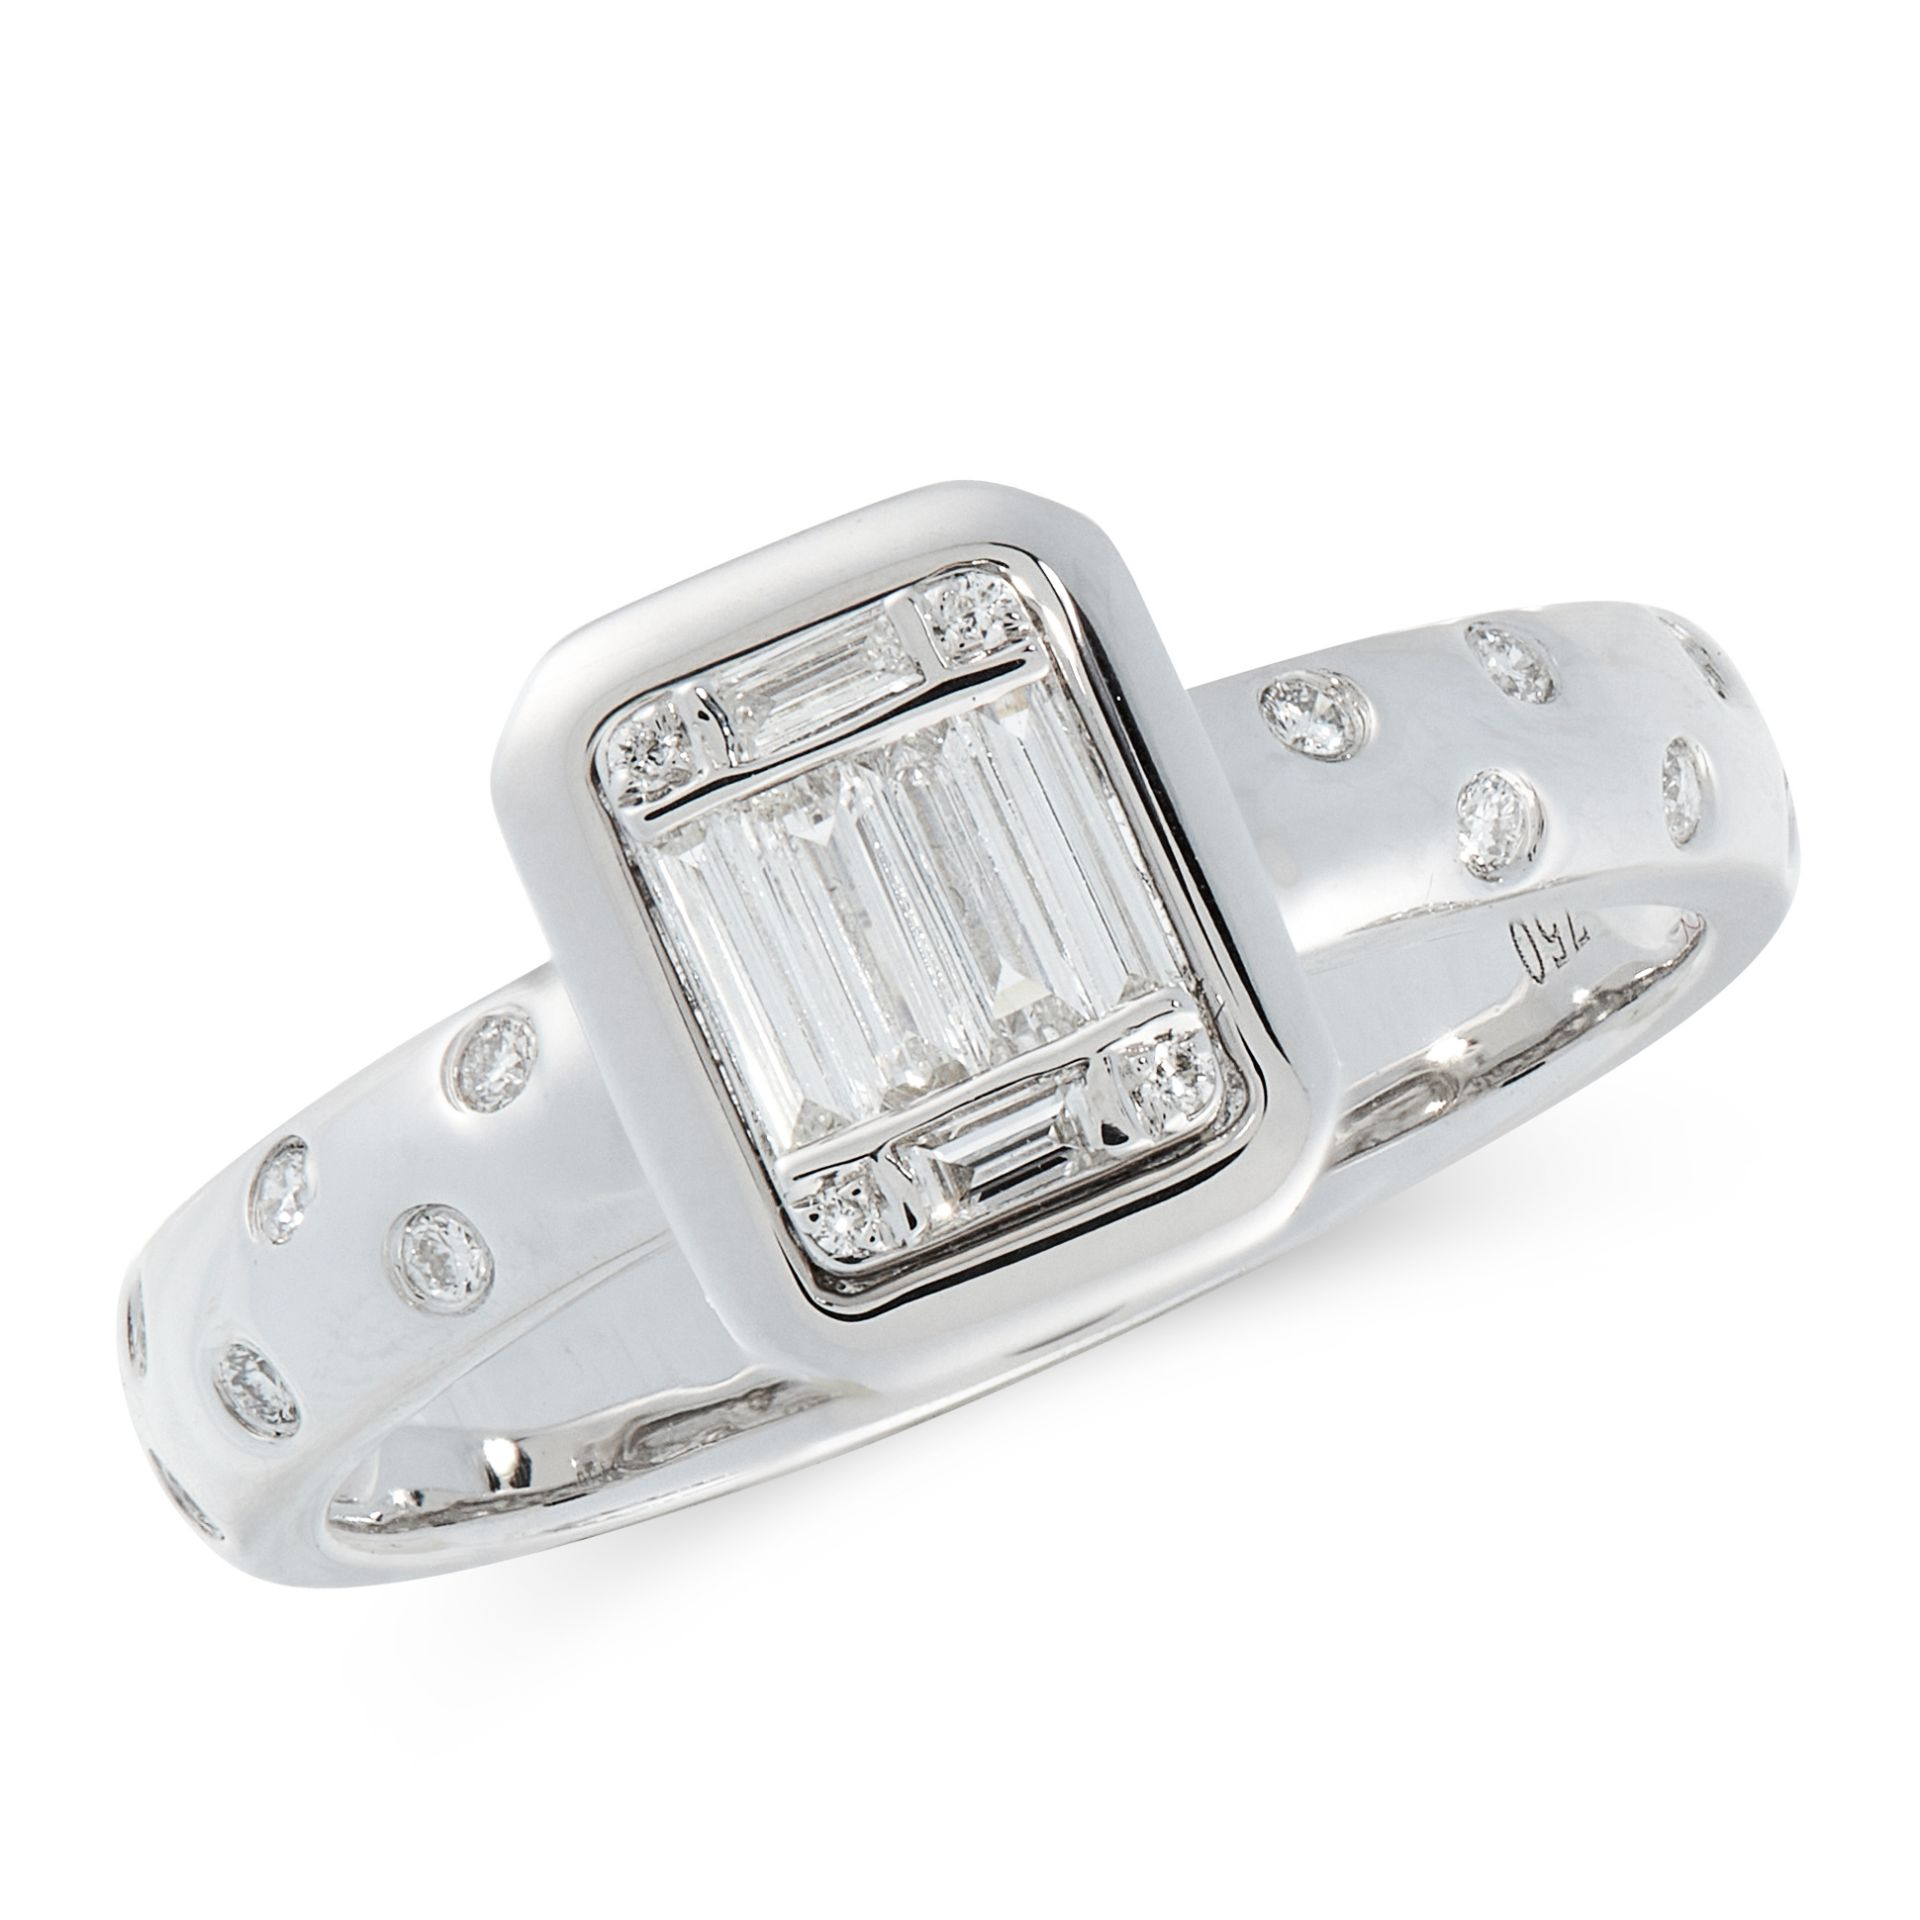 A DIAMOND DRESS RING in 18ct white gold, comprising of a band set with staggered round cut diamonds,